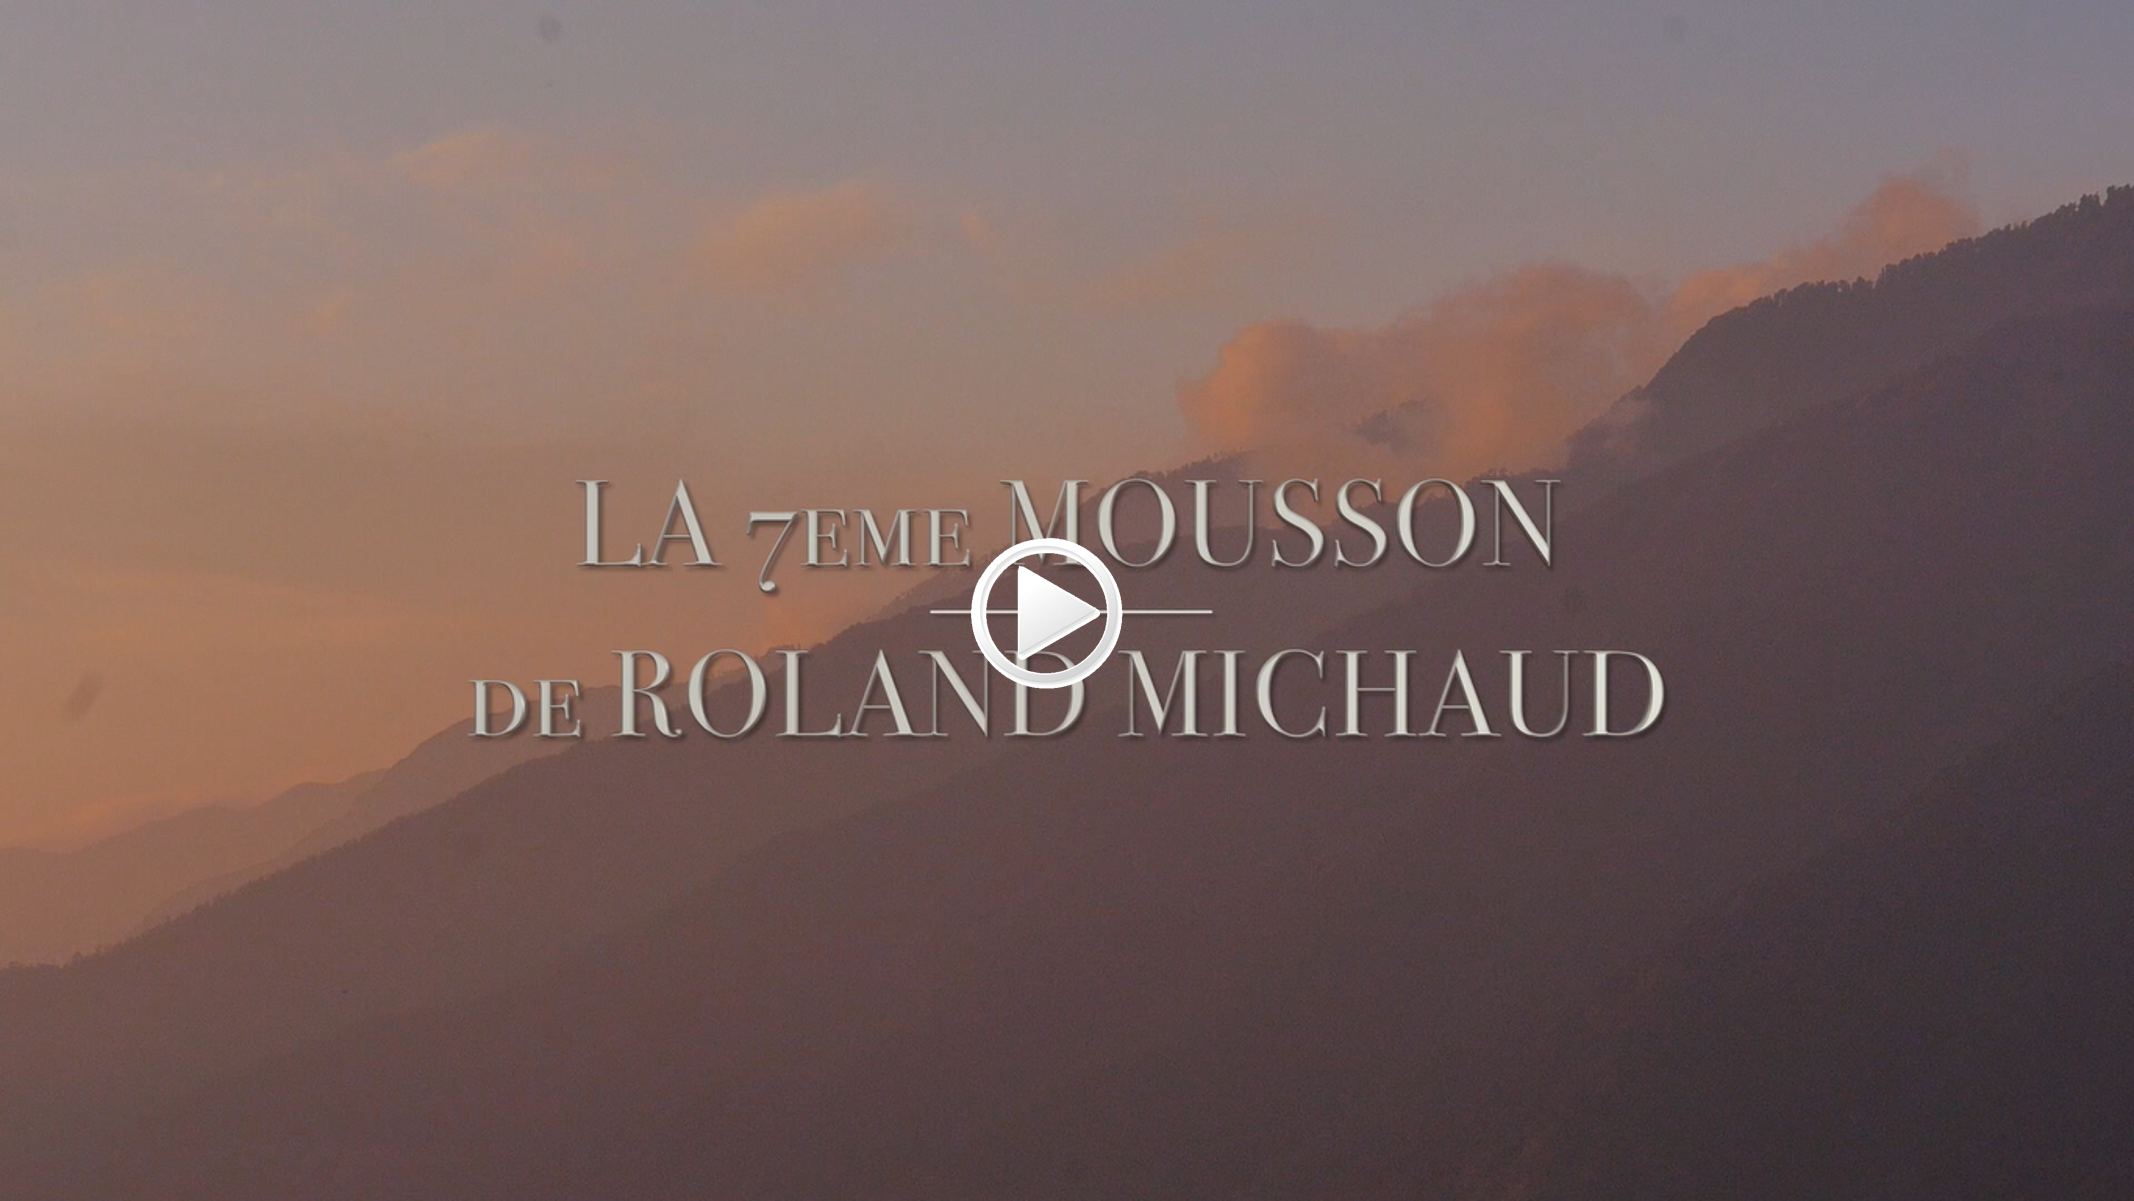 la-7eme-mousson-de-roland-michaud-video